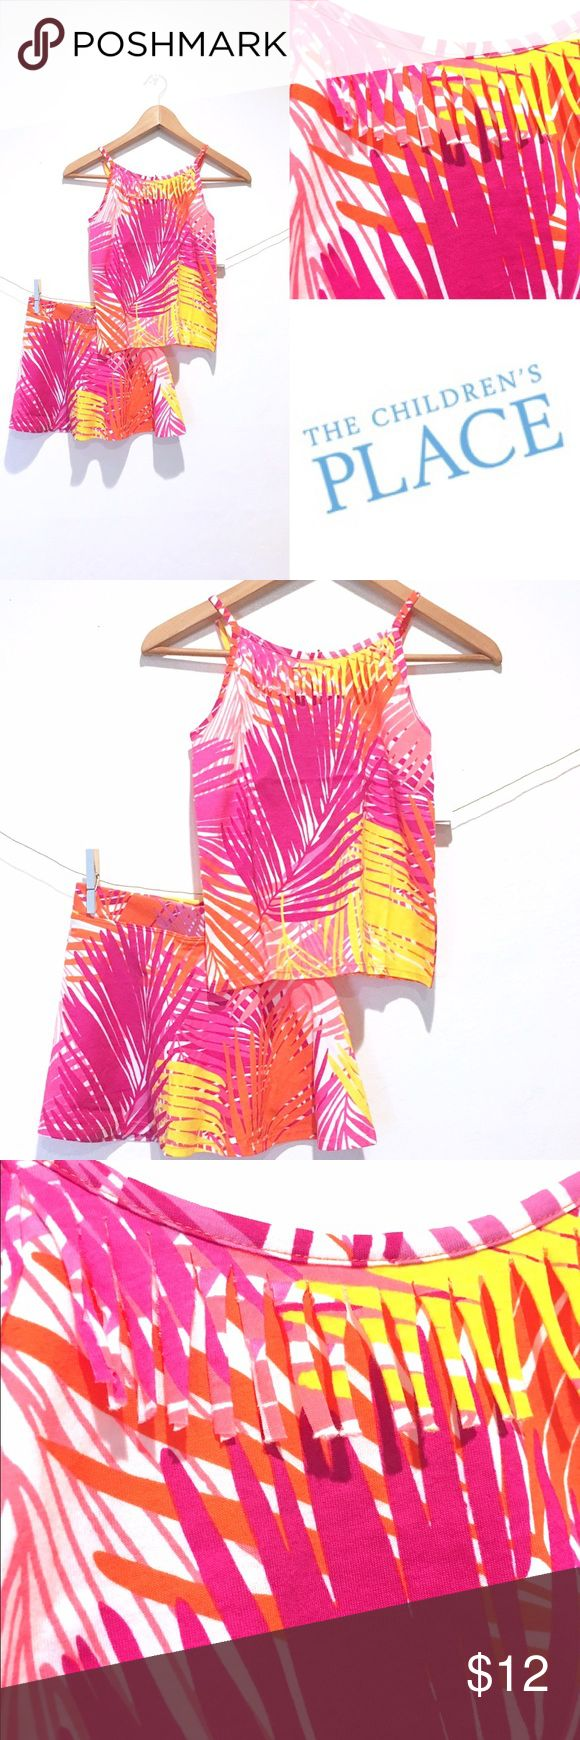 Palm Print Skort & Fringe Tank by Children'a Place Feel the breeze in this tropical matching set! 🌴NWT Size 7/8 🌴Made of 100% cotton 🌴allover palm print in tangelo  🌴Elasticized waist Skort has attached shorts  🌴Spagetti Strap Tank with Fringe Accent  🌴above-the-knee length  🌴Tagless label  🌴Machine Wash Cold Tumble Dry Low The Children's Place Matching Sets